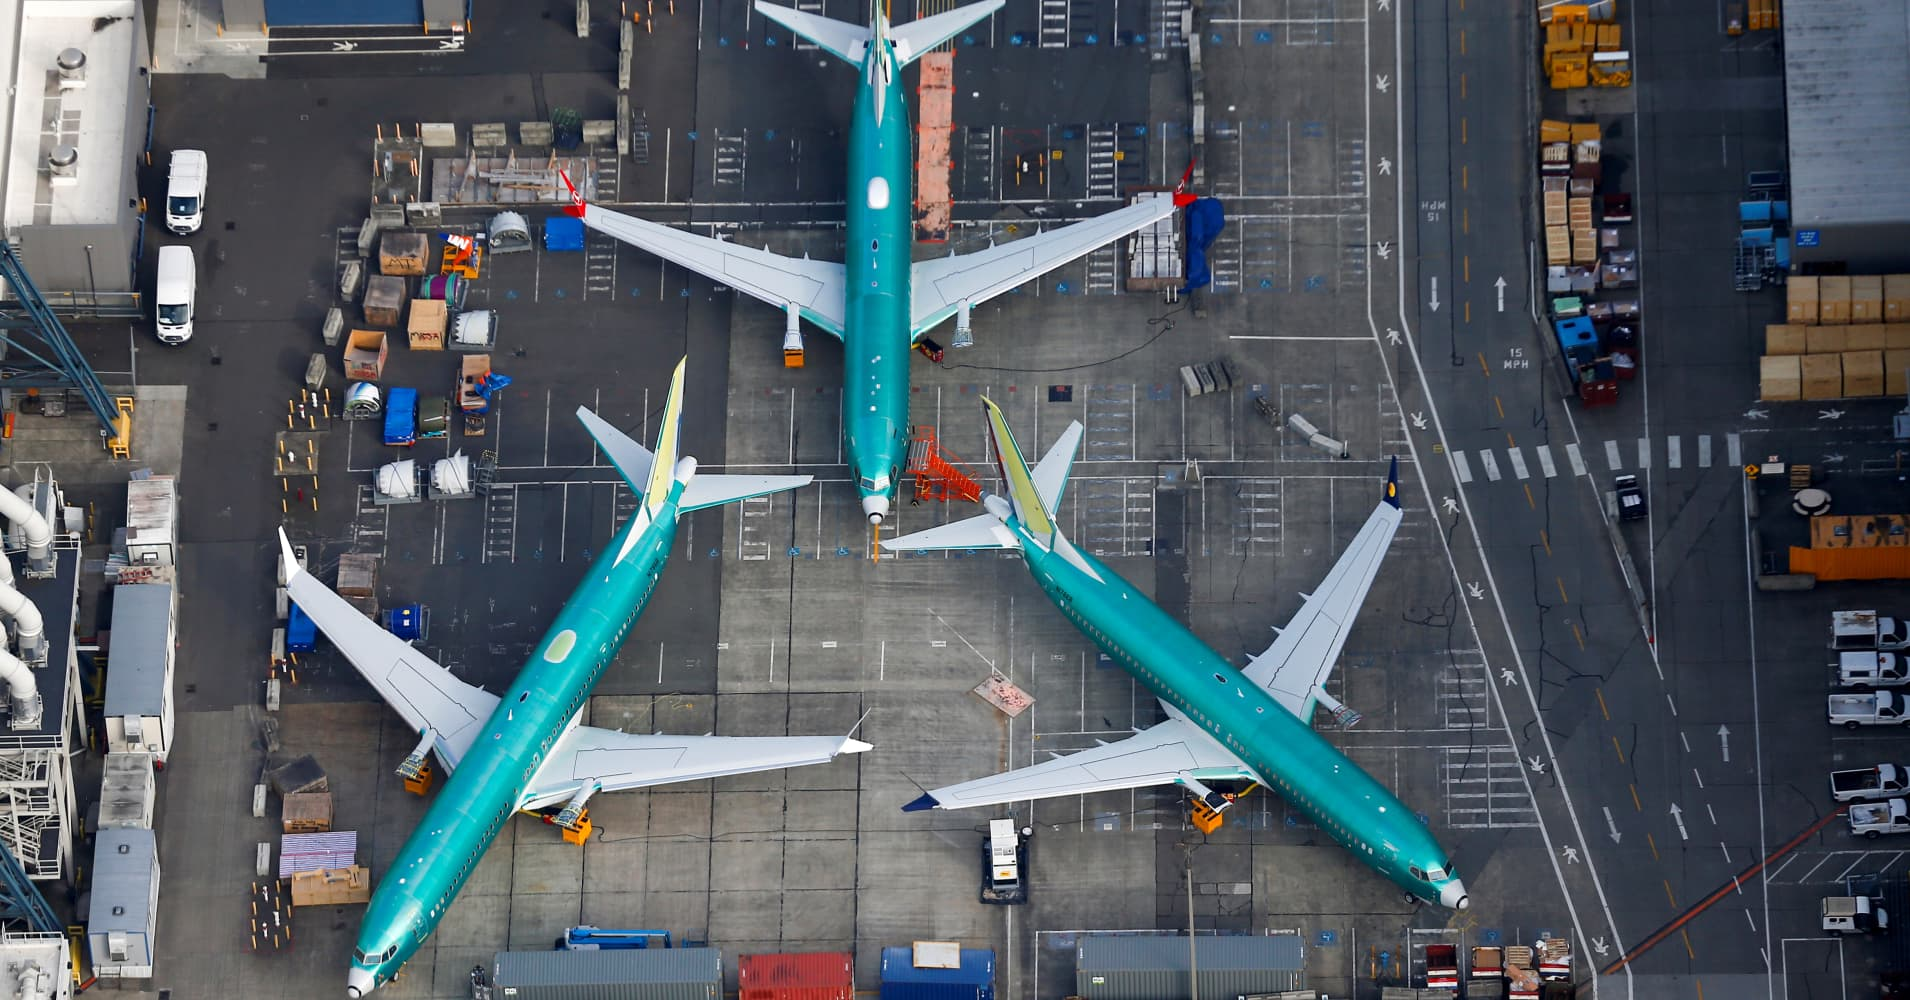 Here's how to make sure your summer travel plans aren't ruined by 737 Max flight cancellations